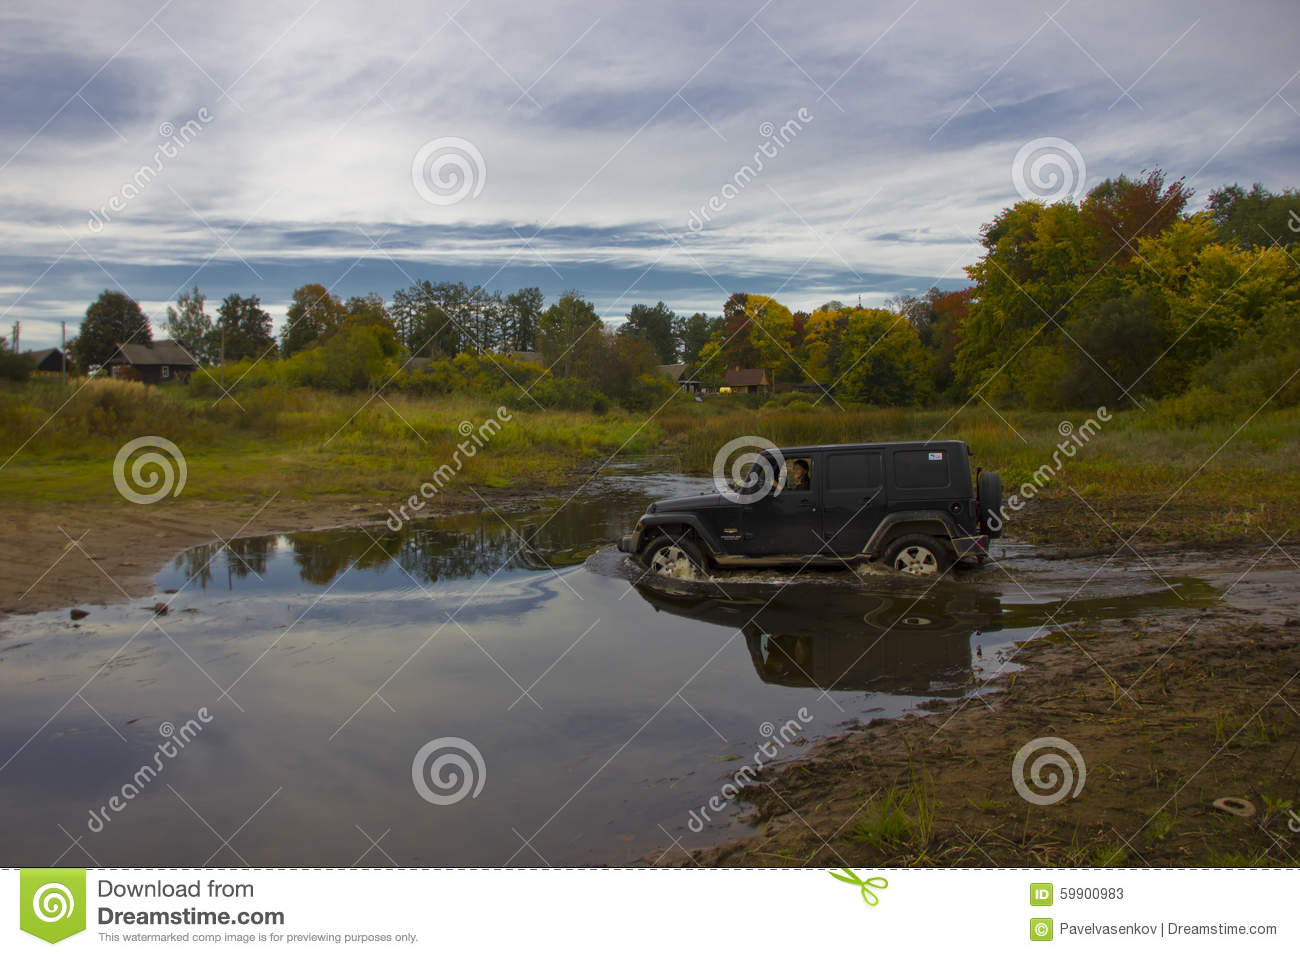 jeep flower vase with Editorial Stock Photo Jeep Wrangler Unlimited Suv Black Off Road Car Landscape Nature Autumn Russia Ford River Water Field Meadow Forest Moves Image59900983 on Backyard additionally Blackwood Bell Mysteries Broken Down Jeep Item Location Guide further 104258 moreover Unfinished Wood Crafts Wooden Flower Pot Wooden Wheels together with 1058766 2012 Volkswagen Beetle Lady Bug Pitches The Flower Vase Goes Butch gallery 2.